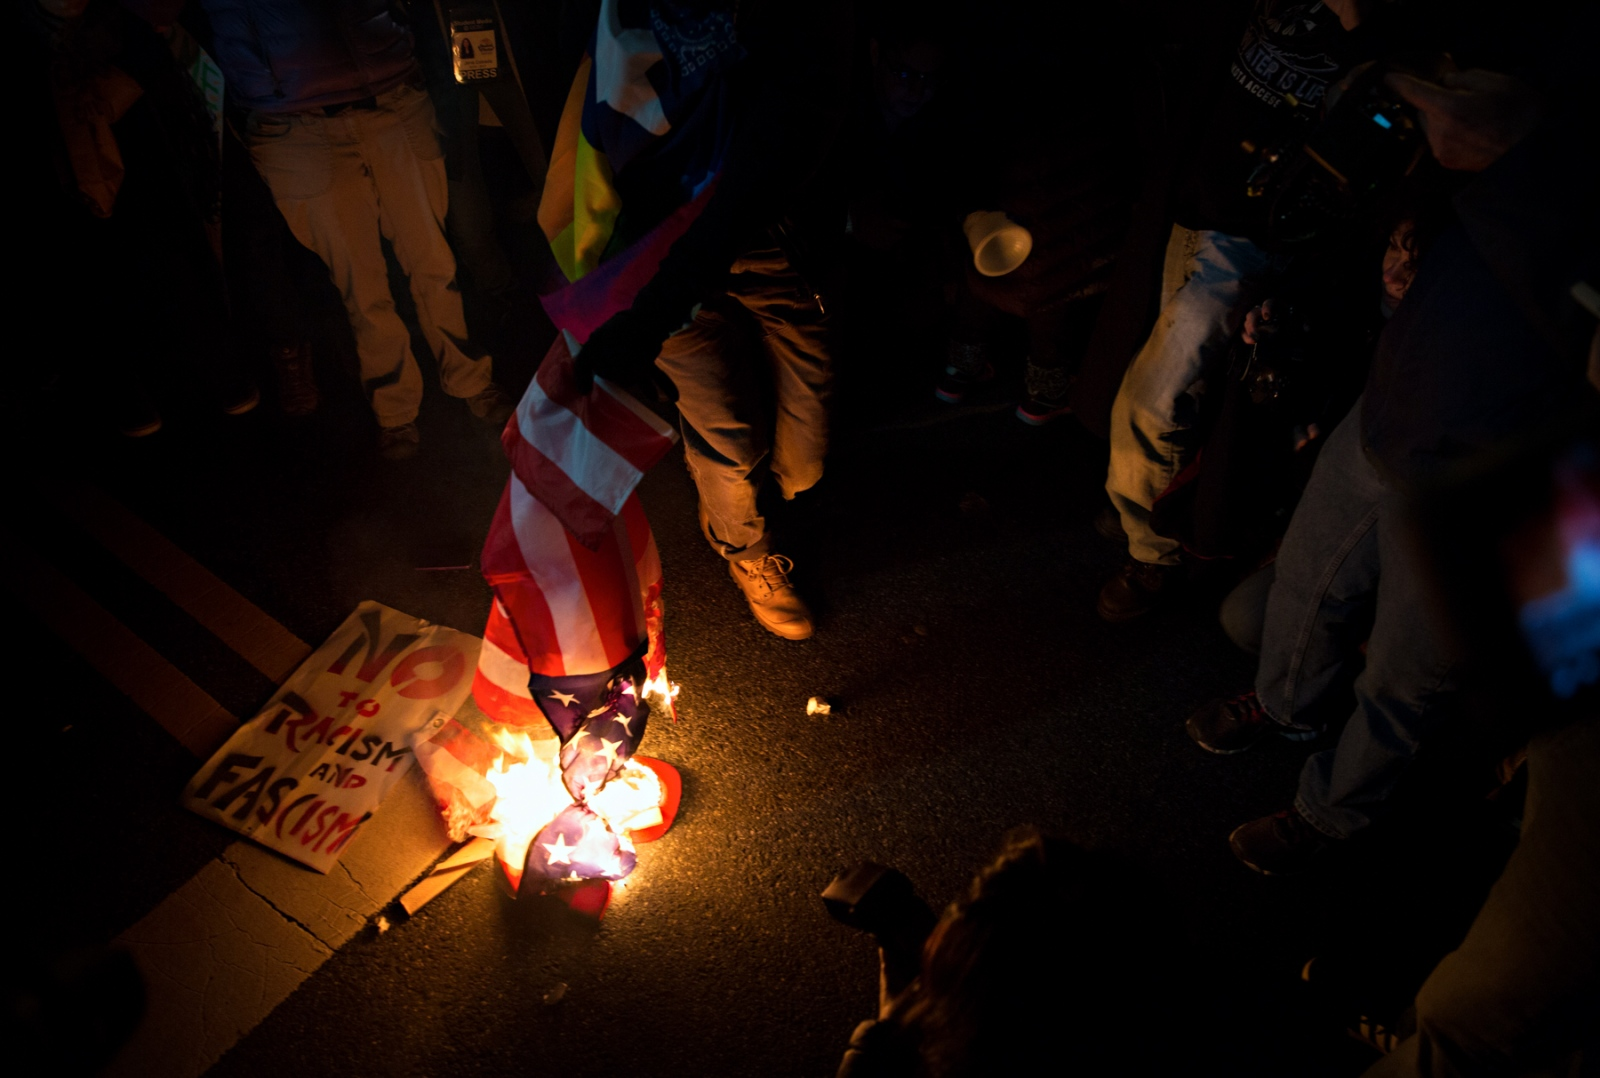 January 19, 2017 - Washington, DC - The anti-Trump protestors voiced their anger about the election of Donald Trump by burning a US flag during one of the many protests that lasted all day and night the day before the Inauguration.